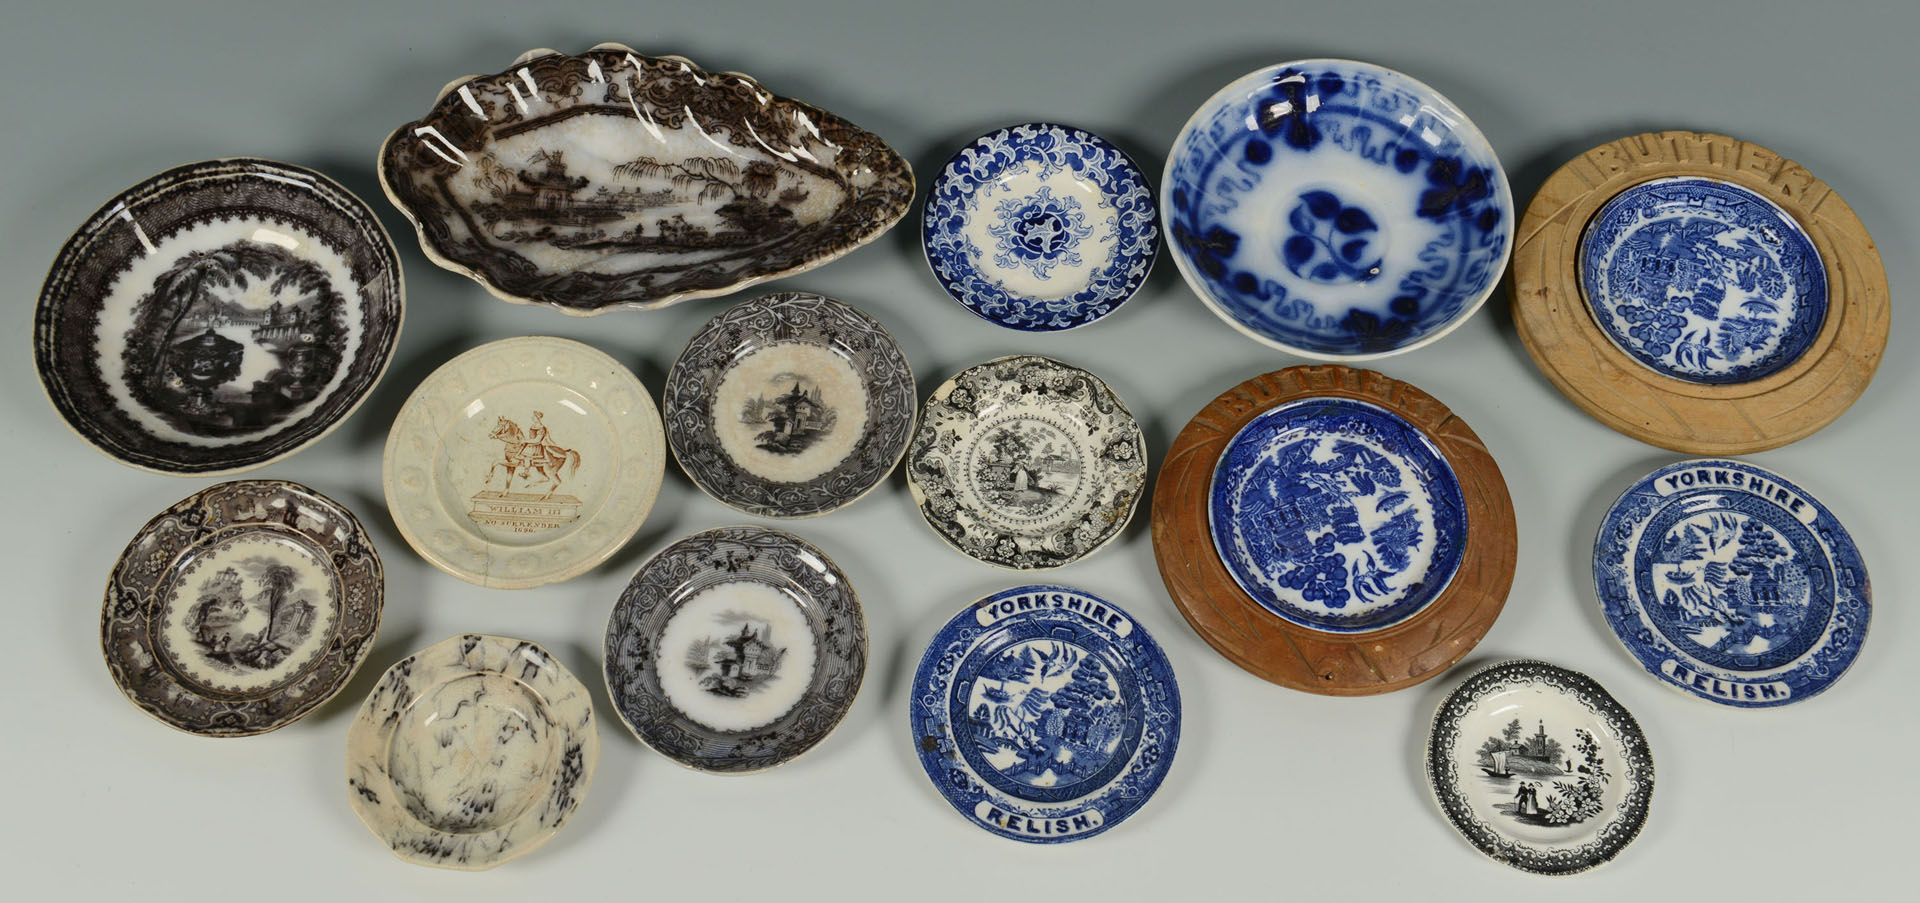 27 pcs of  blue & black Staffordshire porcelain